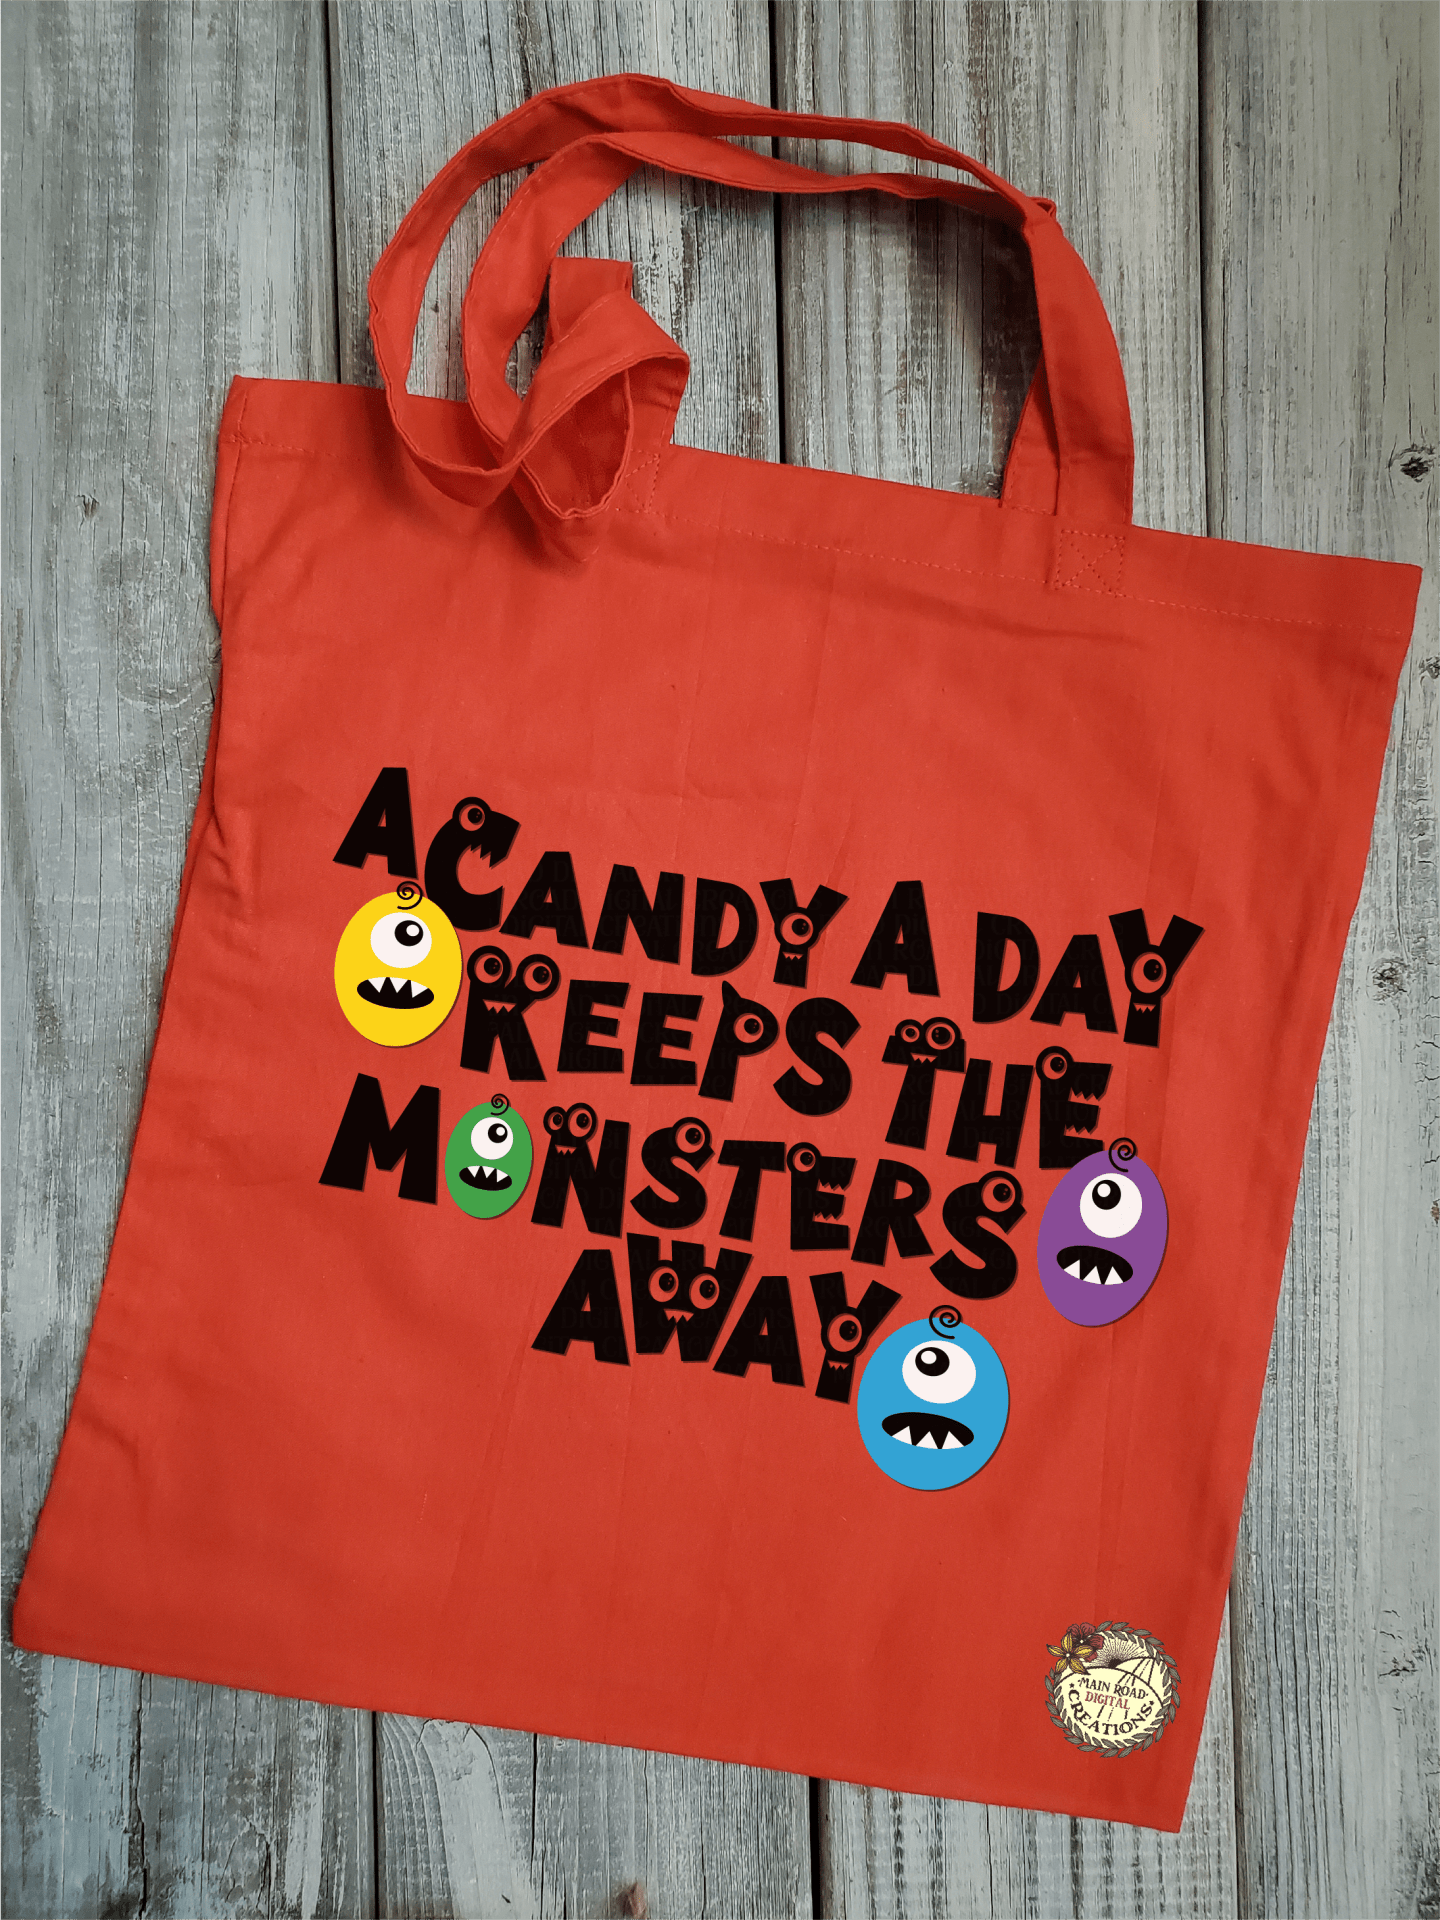 trick-or-treat bag design free, Halloween SVG free, Cricut cut files for Halloween, cute monster Halloween cut files,  vector file for Halloween, Halloween clipart free